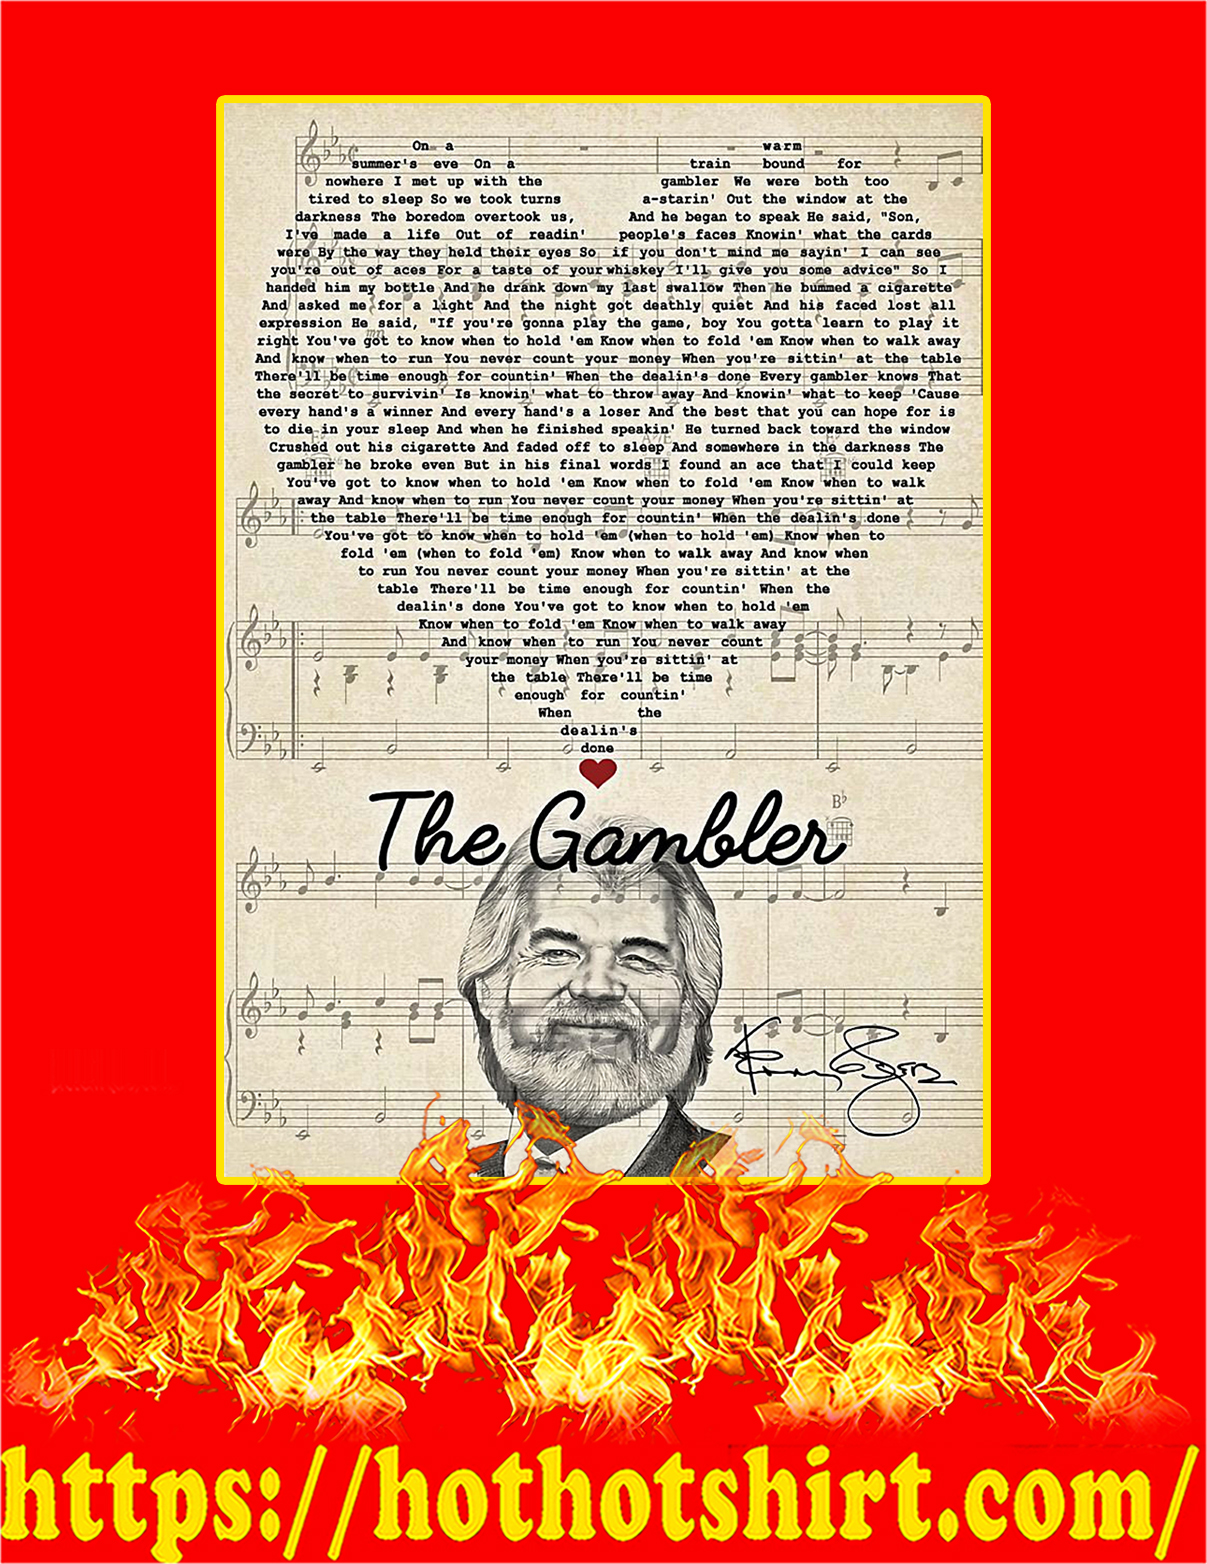 The Gambler Kenny Rogers Signature Poster - A4